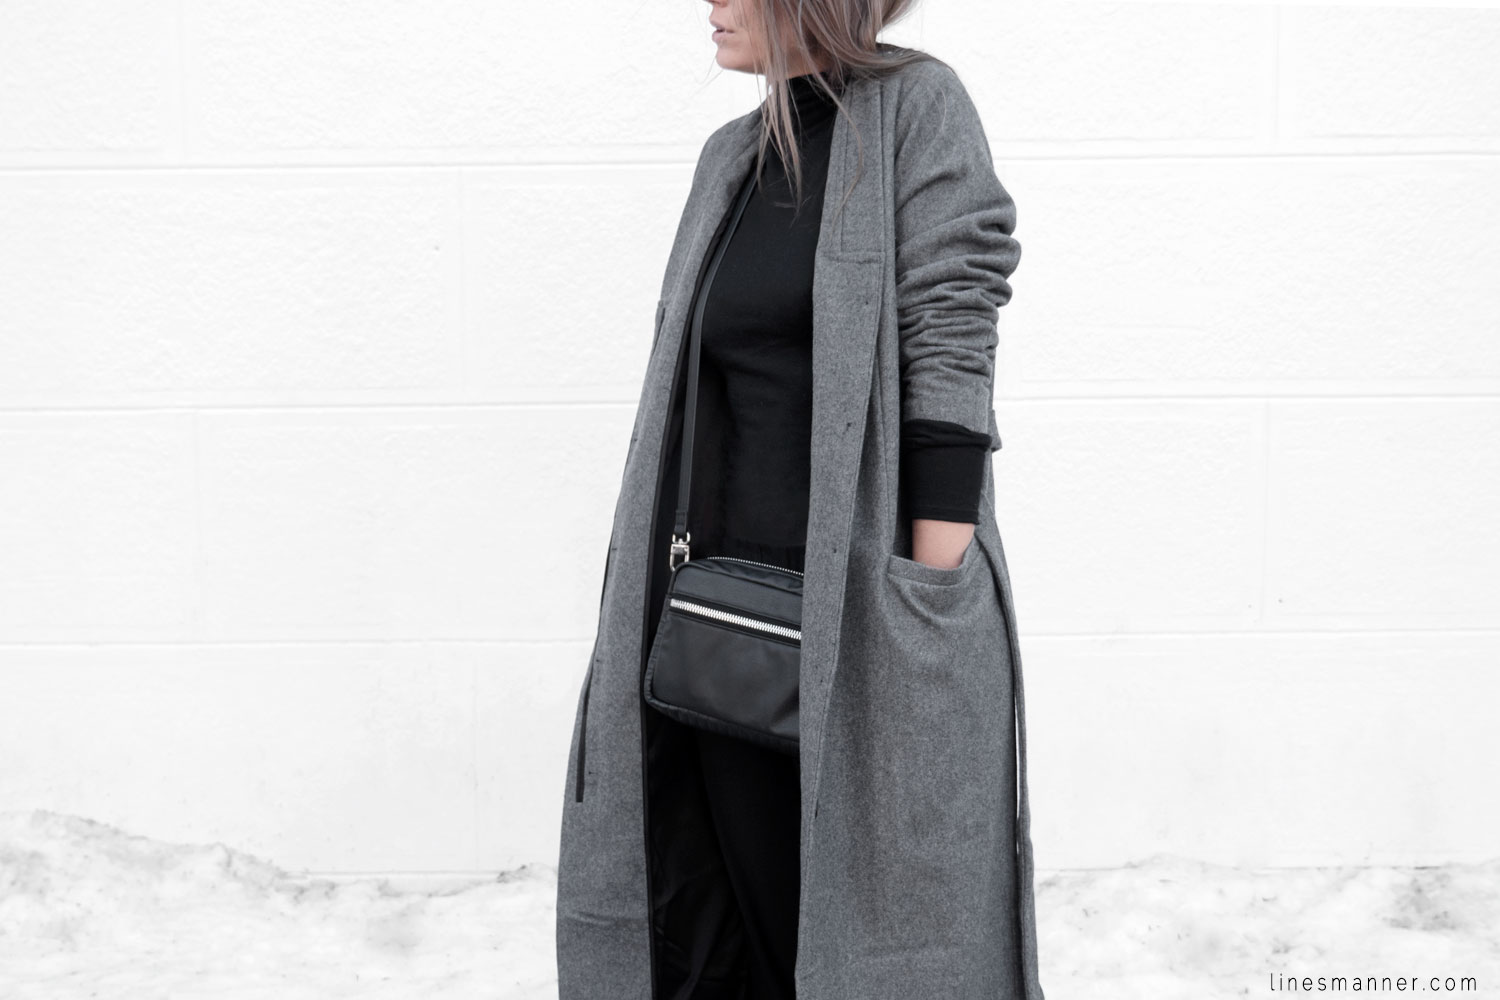 Lines-Manner-Simplicity-Neutral-Palette-Functional-Versatile-Timeless-Grey-Winter_Coat-Details-Essentials-Minimal-Basics-2